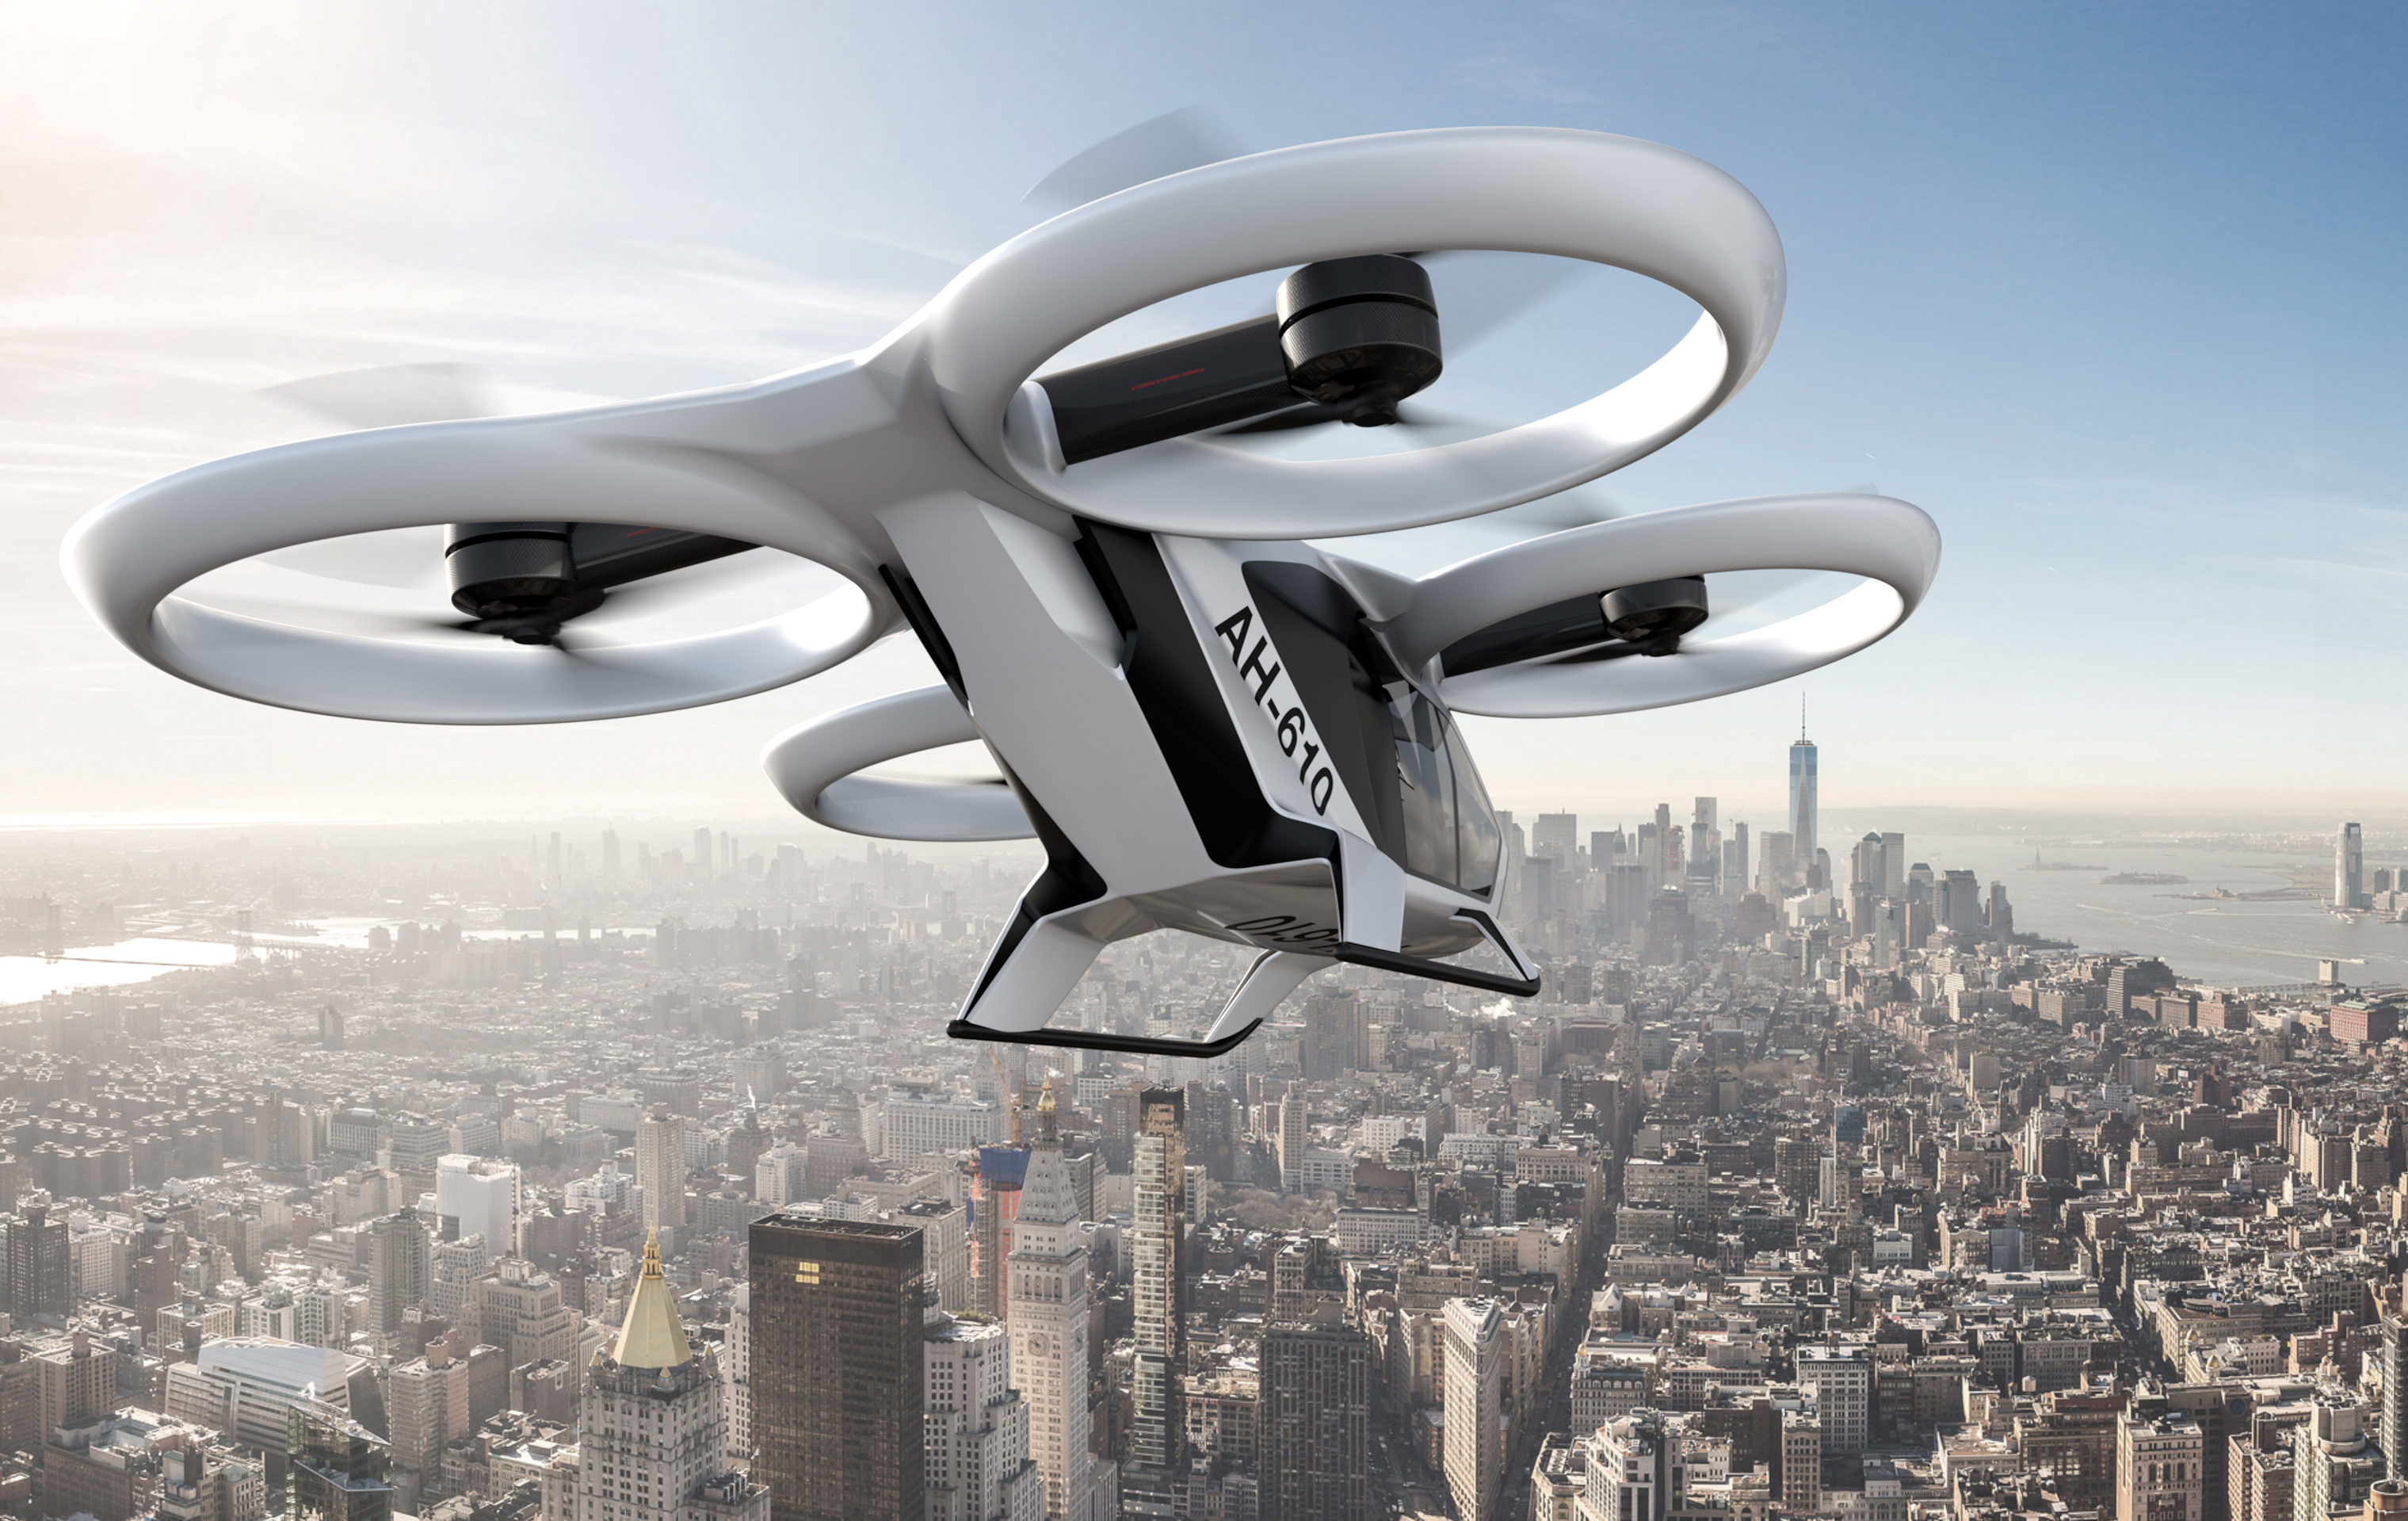 Flying taxis to operate from next year